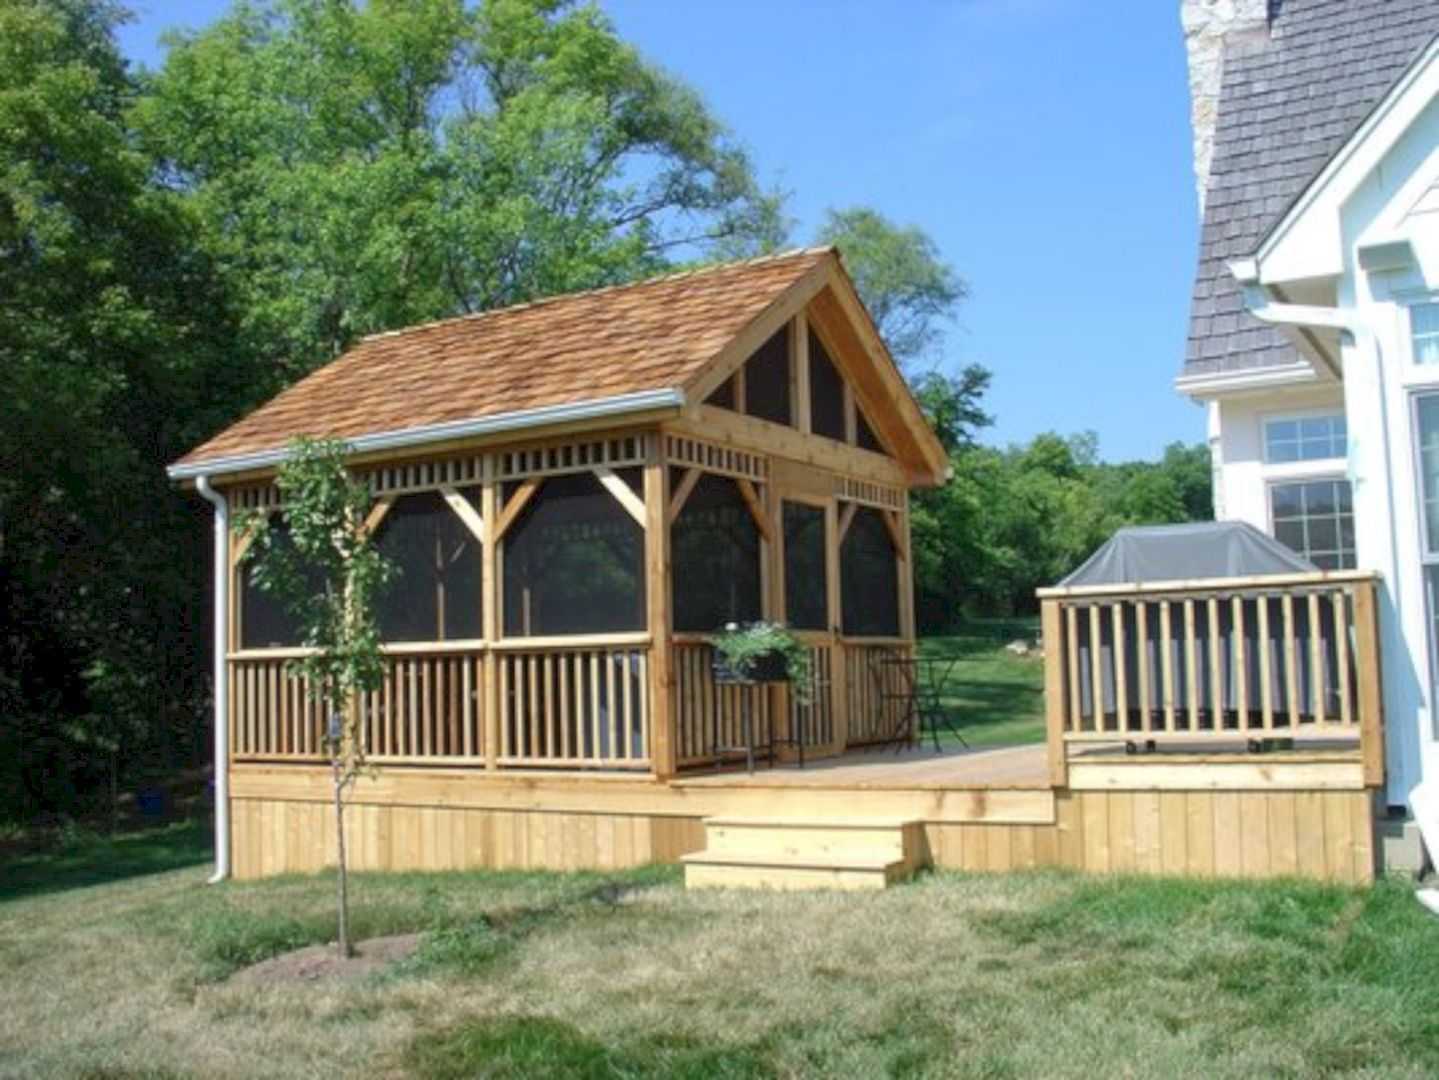 8 Ways To Have More Appealing Screened Porch Deck Screen House Screened Gazebo Screened Porch Designs Outdoor screen rooms ideas